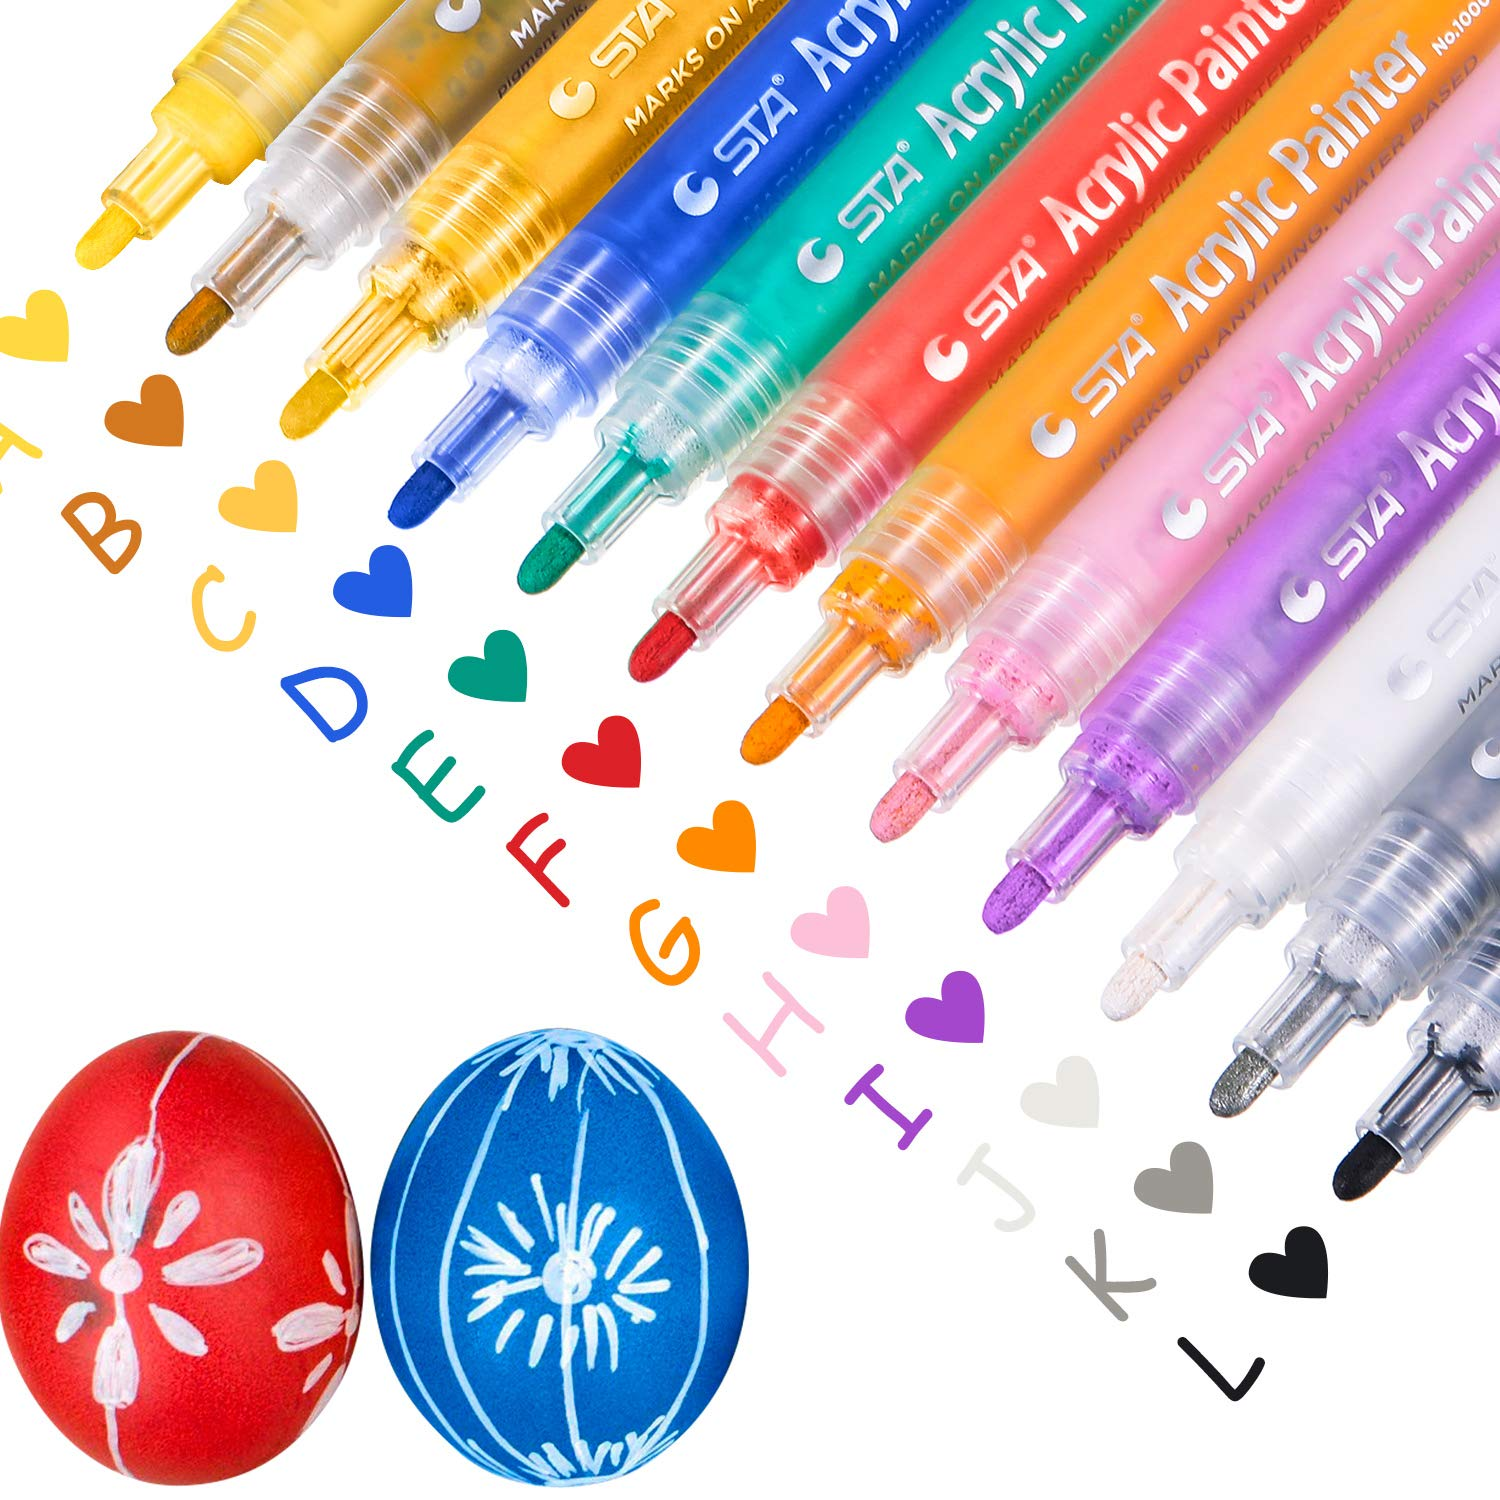 12 Colors Acrylic Paint Marker Pens, Maxdot Paint Pen Art Markers Set for Paper, Glass, Metal, Canvas, Wood, Ceramic, Fabric Painting, DIY Crafts (Pack of 12) 4336948030